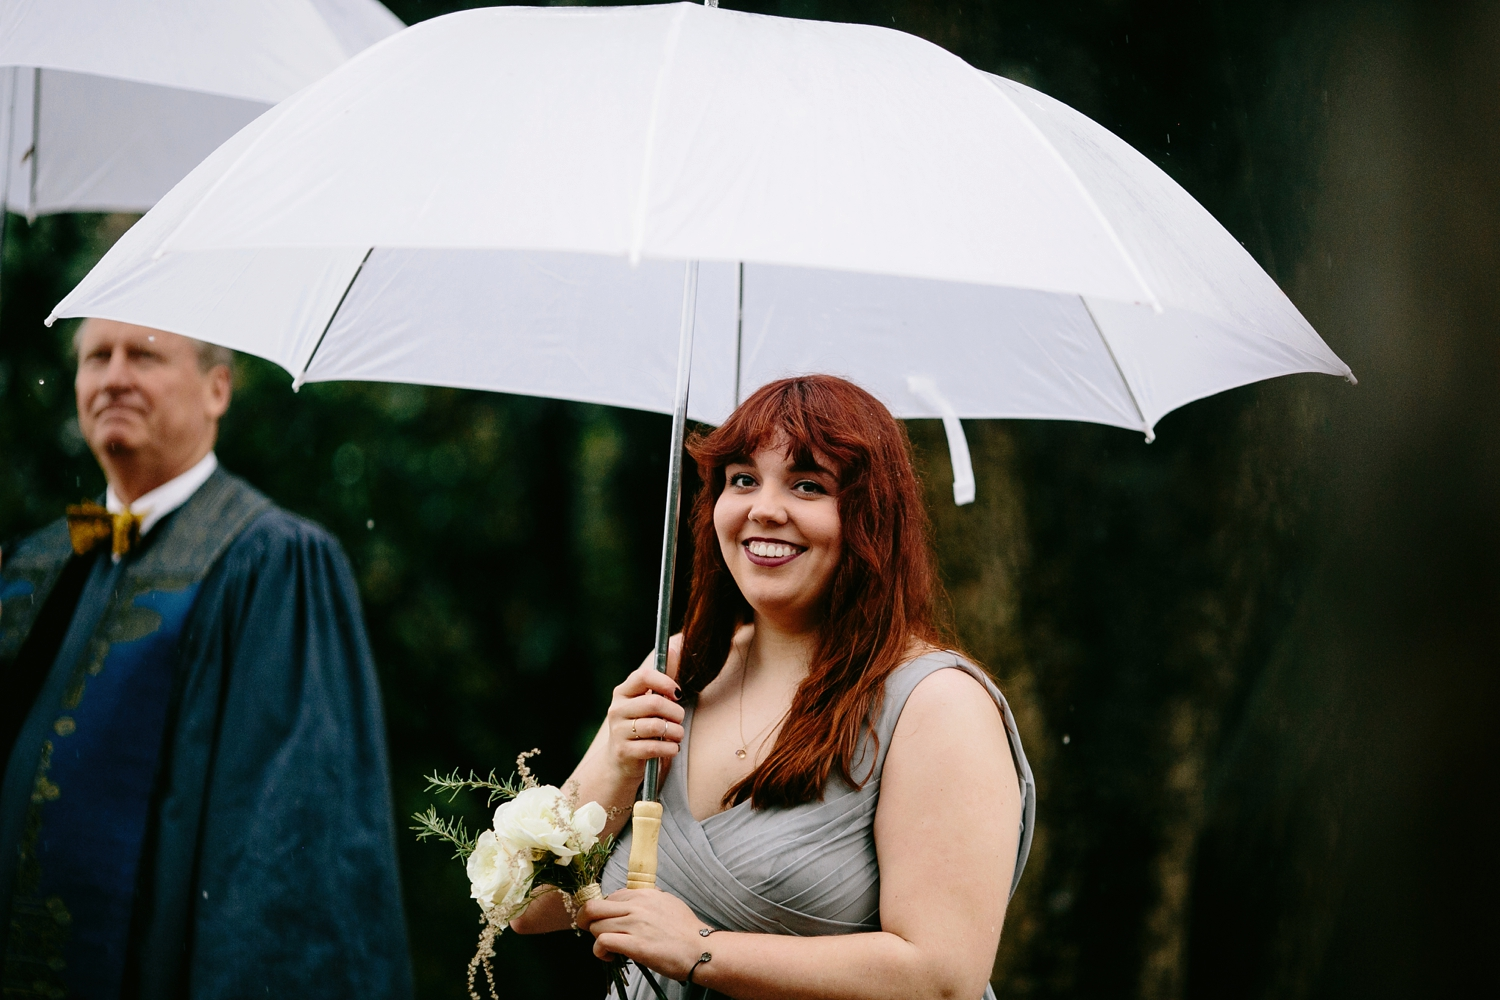 rainy-wedding-pictures-067